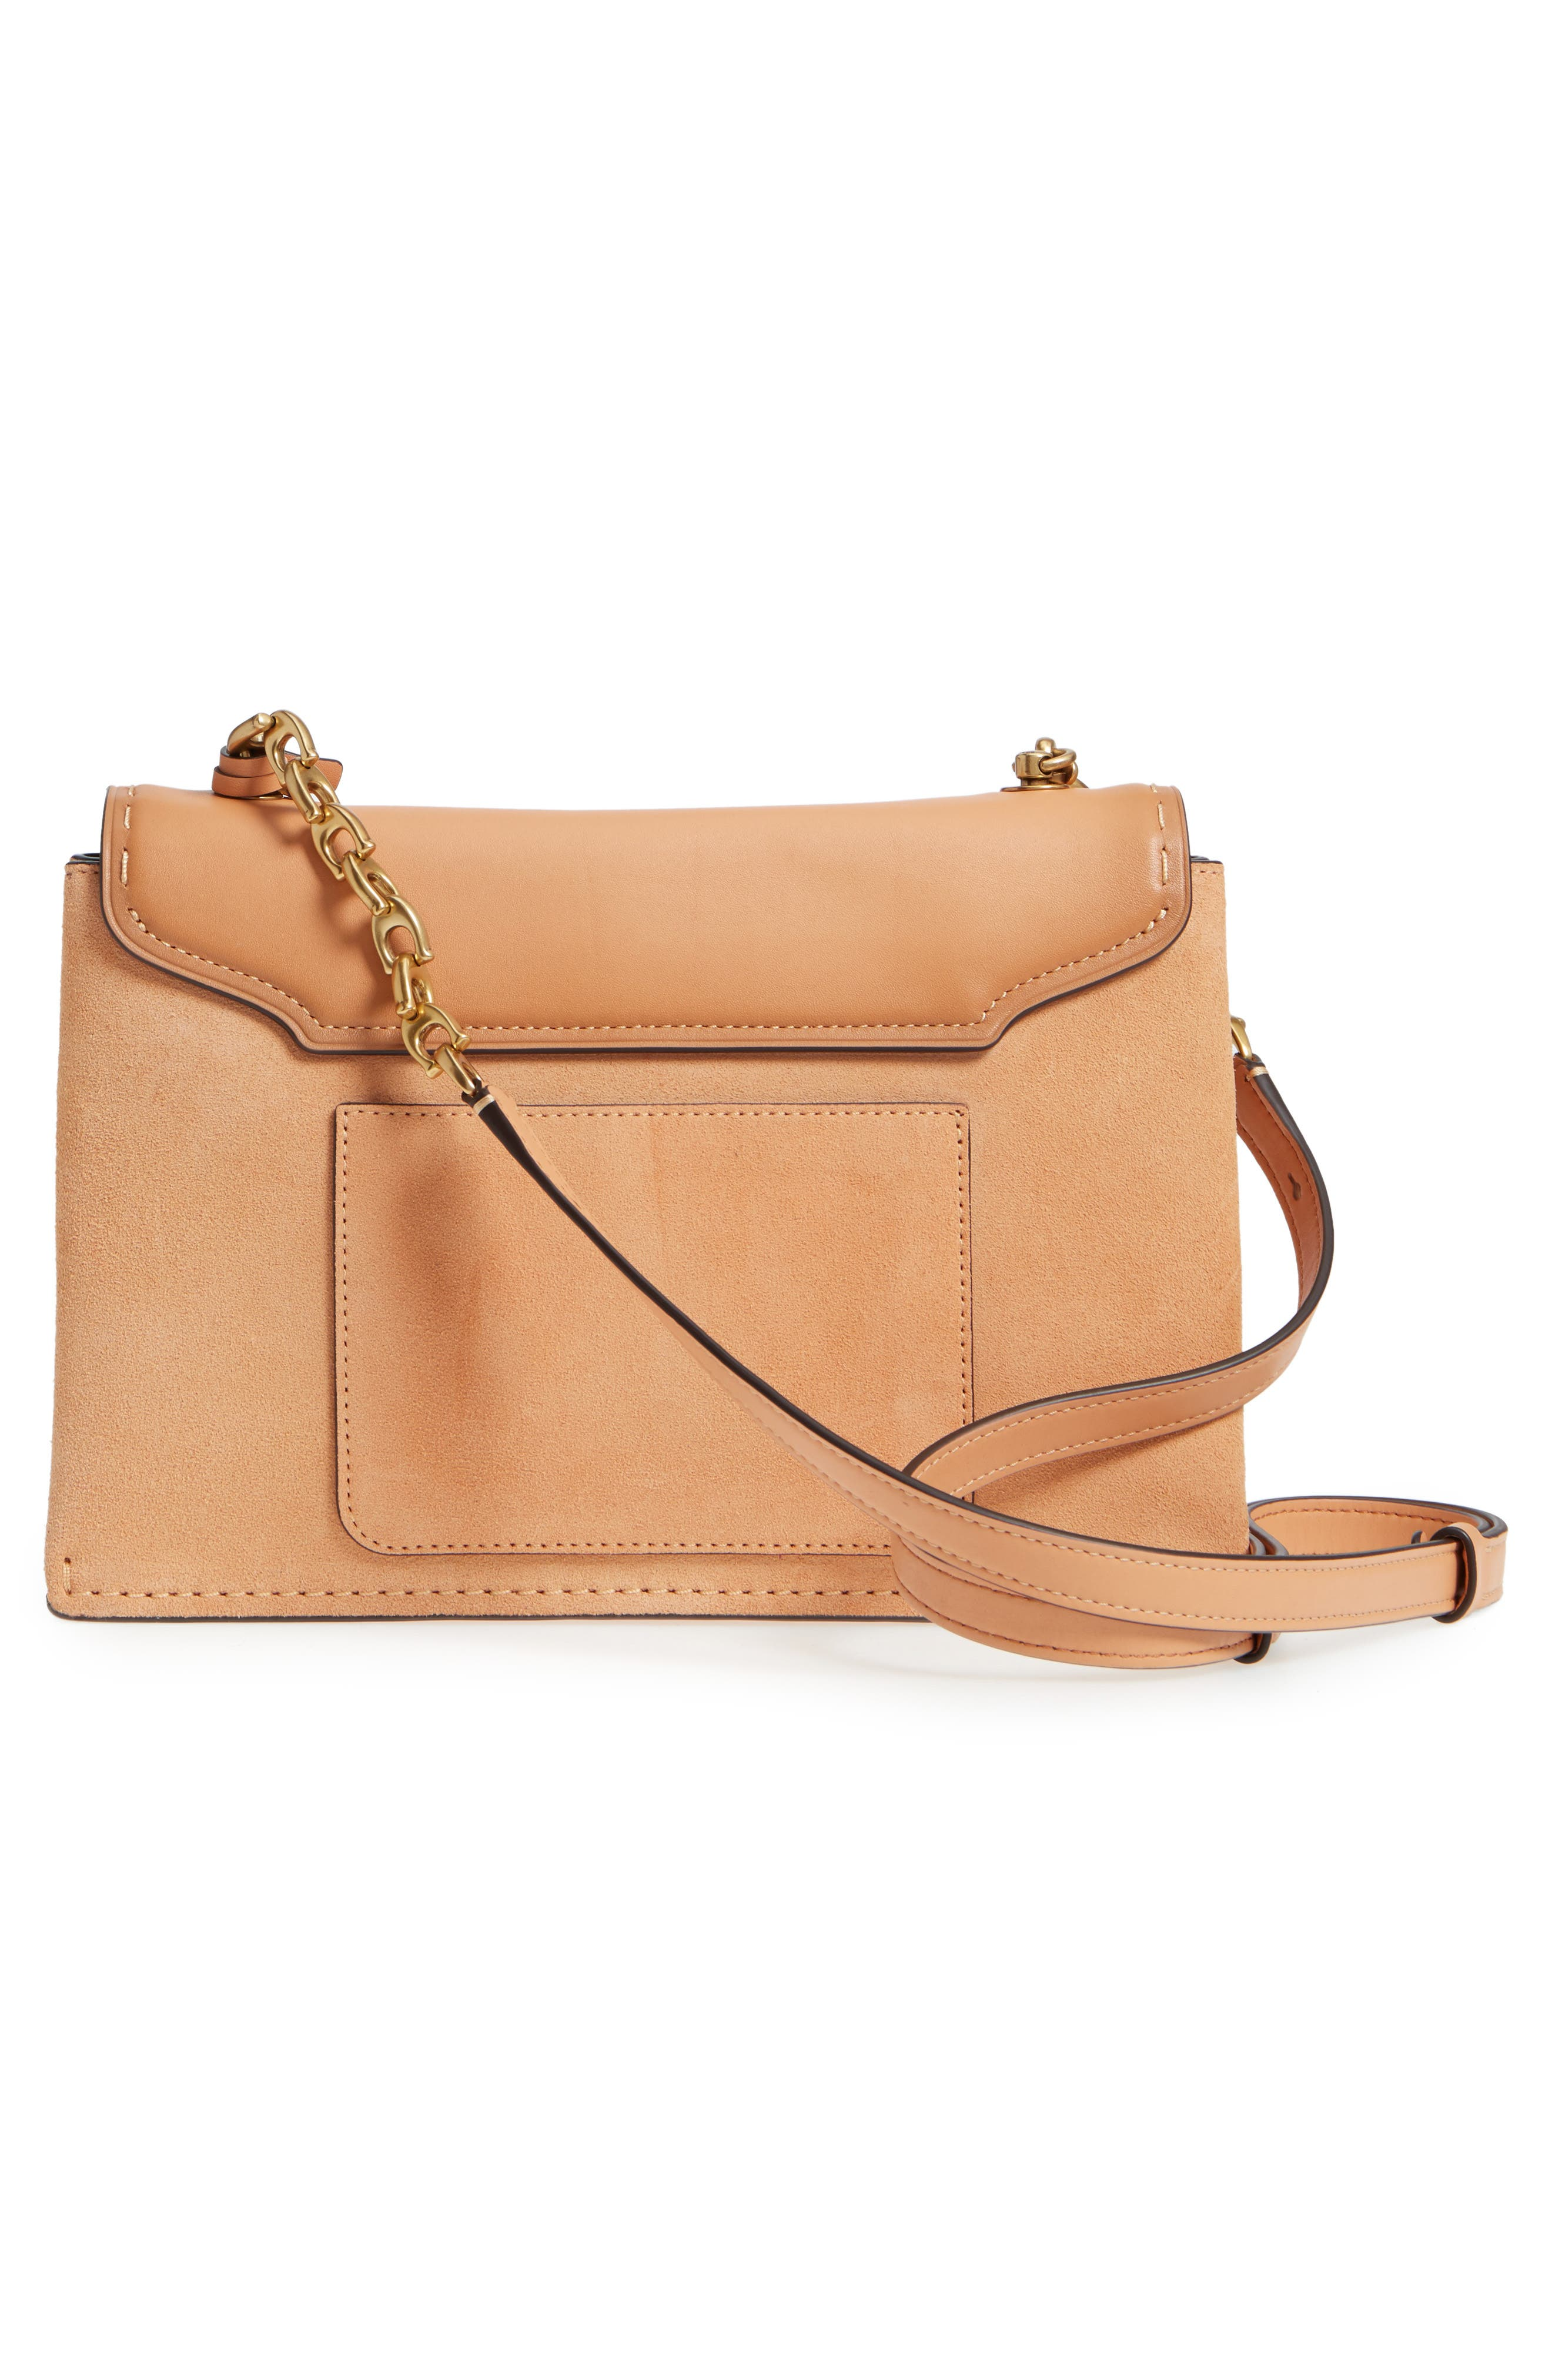 Alternate Image 3  - COACH 1941 Swagger Chain Leather Crossbody Bag